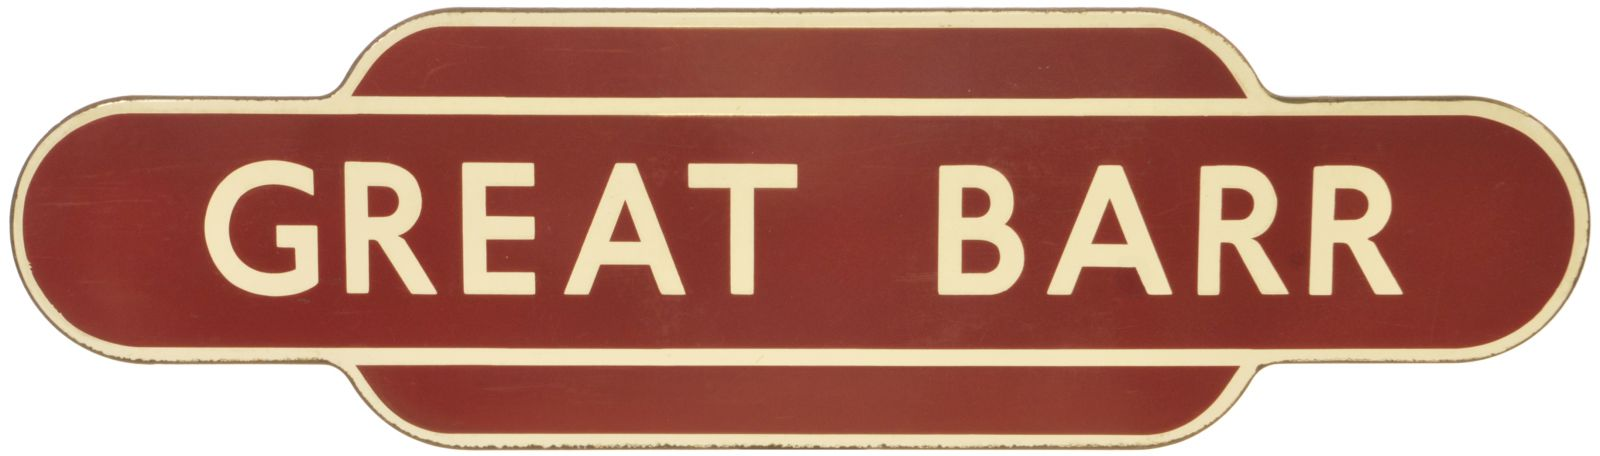 Lot 24 - Railway Station Totem Signs, Great Barr: A BR(M) totem sign, GREAT BARR, (f/f) from the Aston to